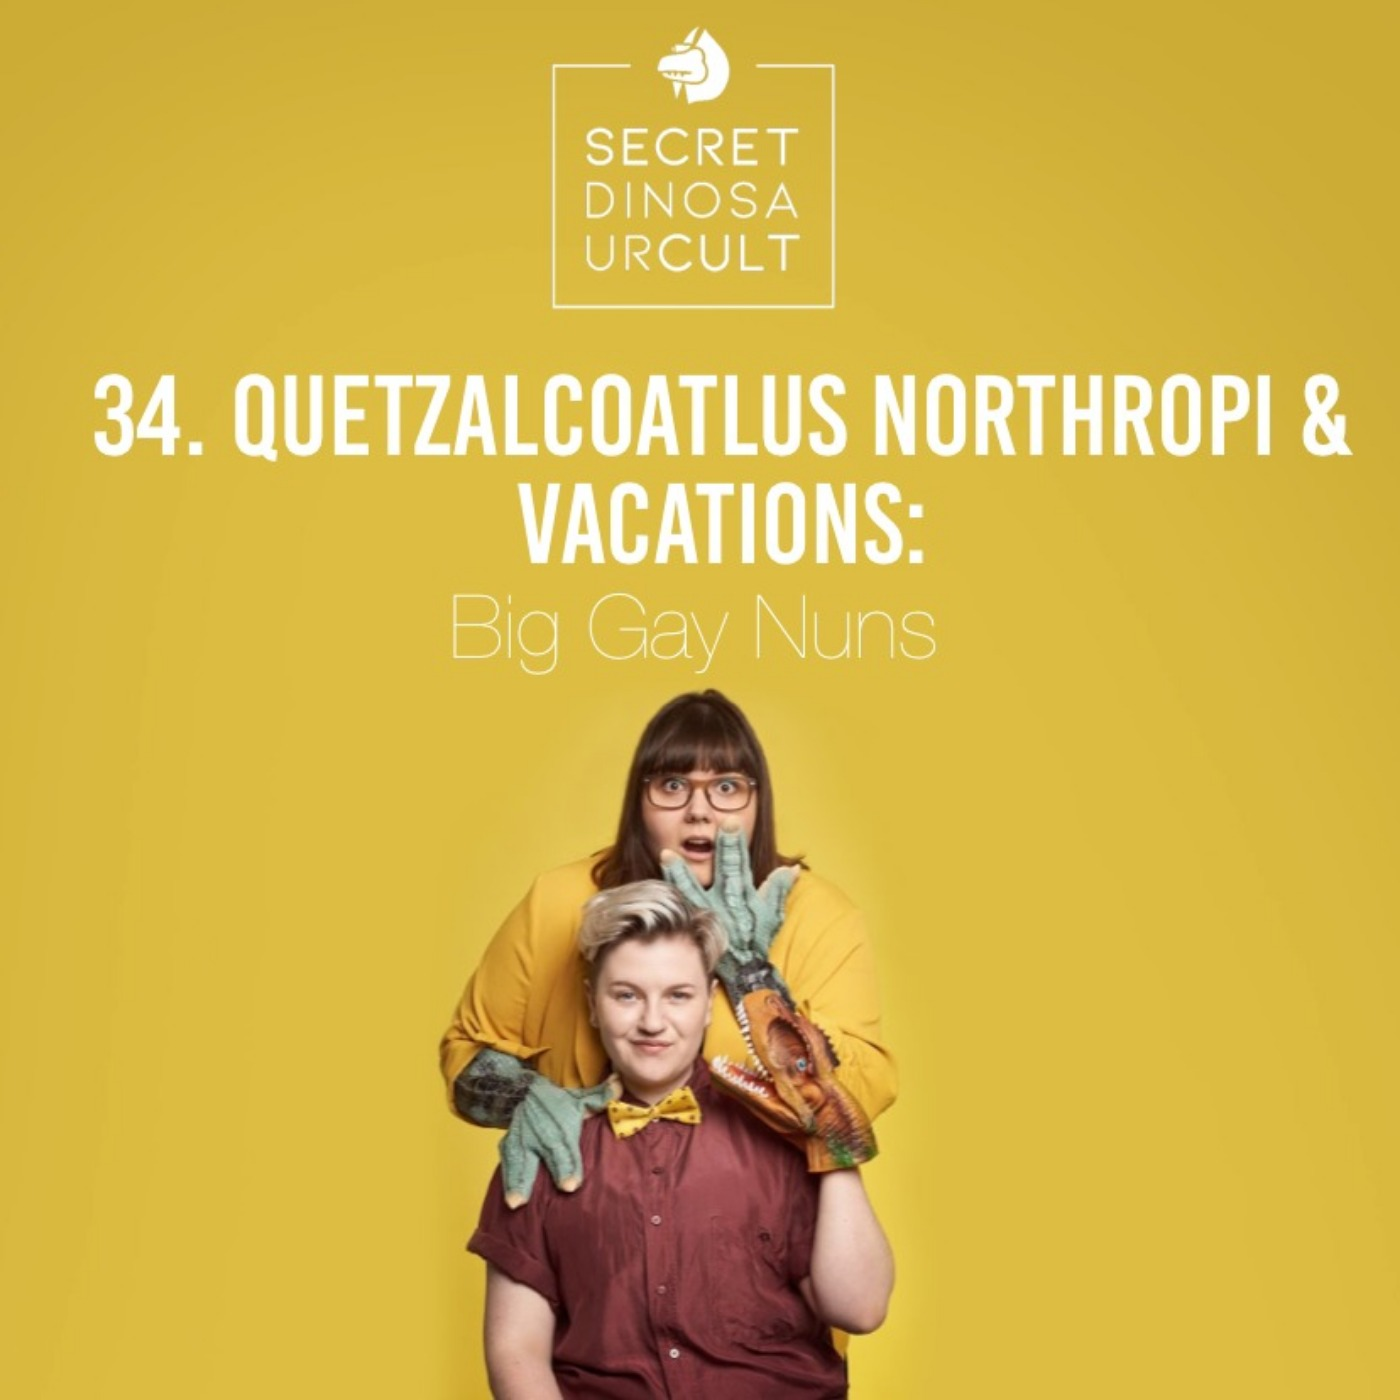 Quetzalcoatlus Northropi & Vacations: Big Gay Nuns